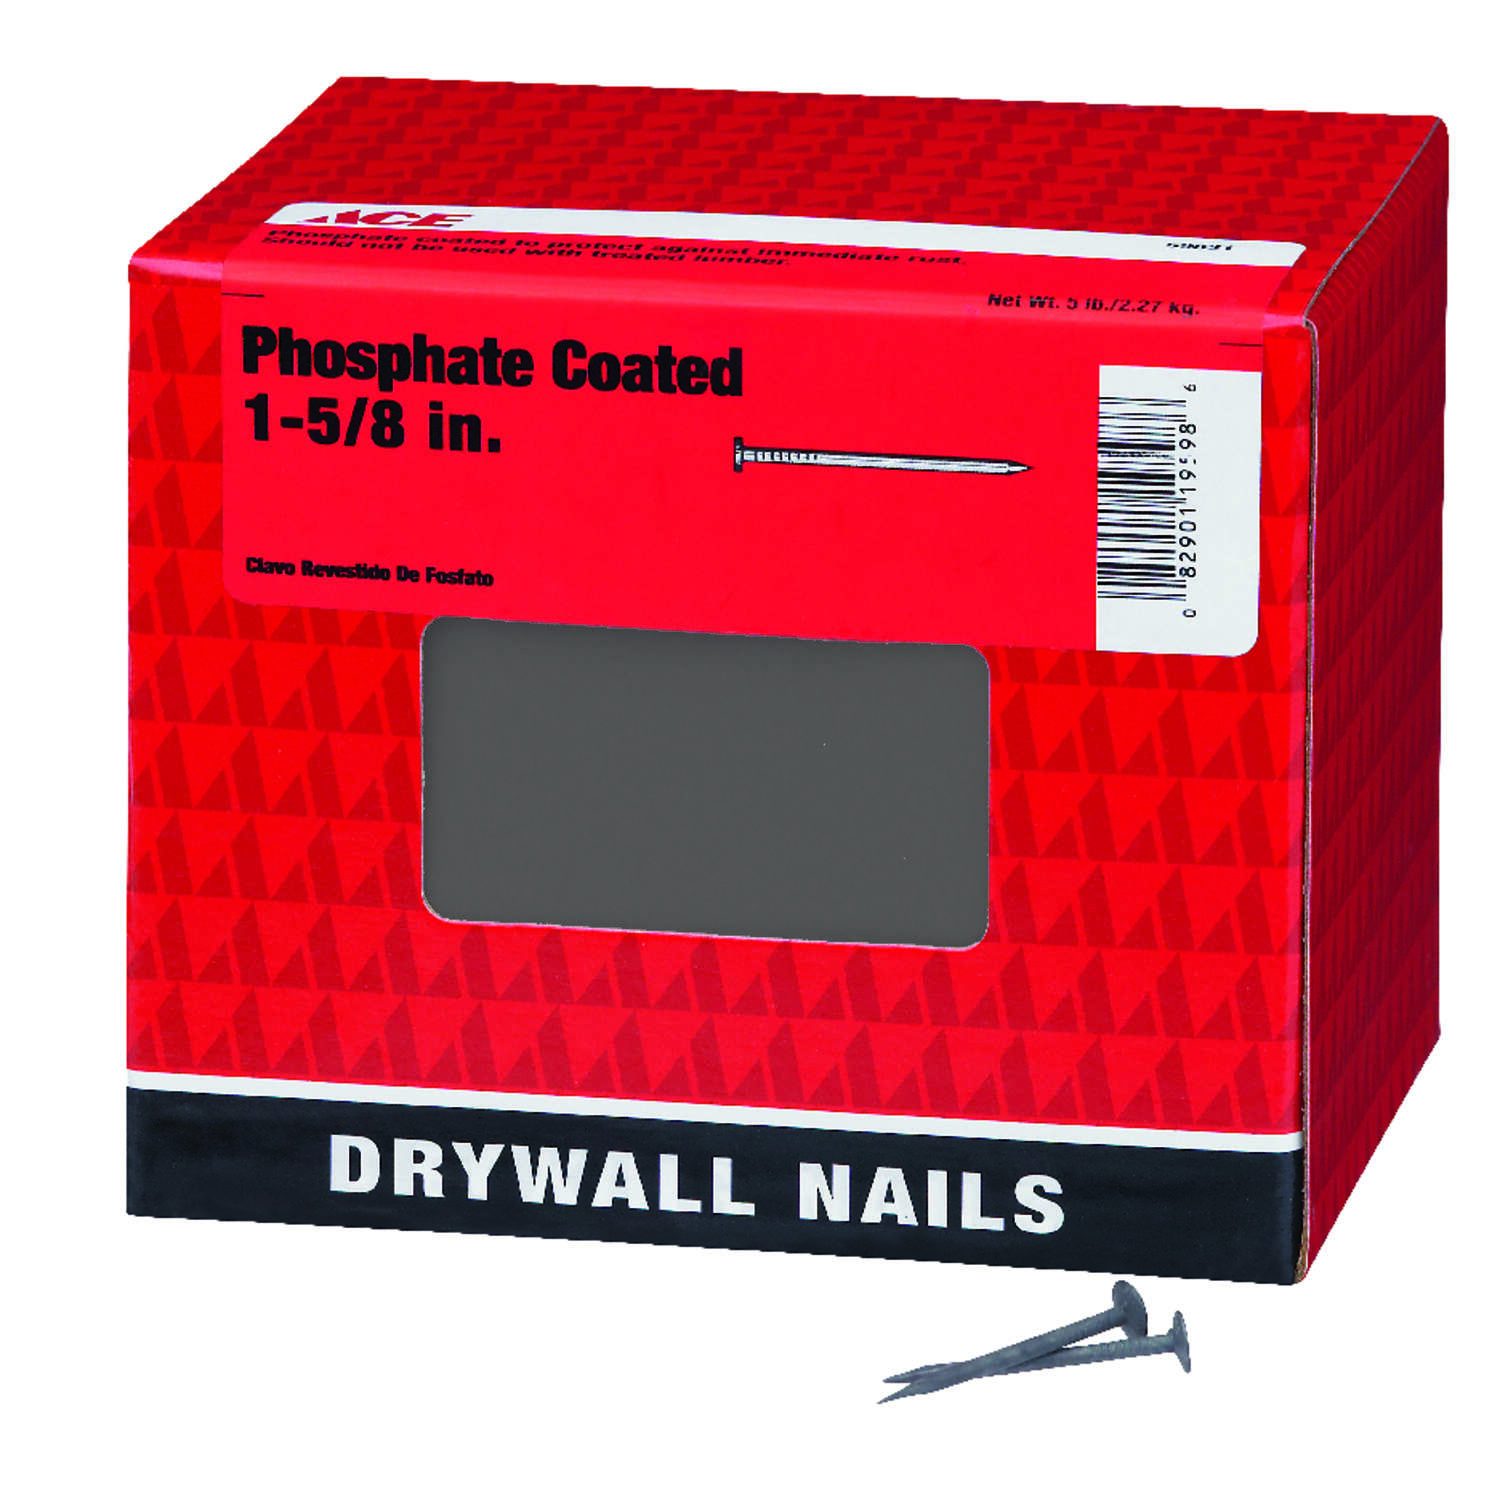 Ace  1-5/8 in. Drywall  Phospate-Coated  Nail  5 lb.